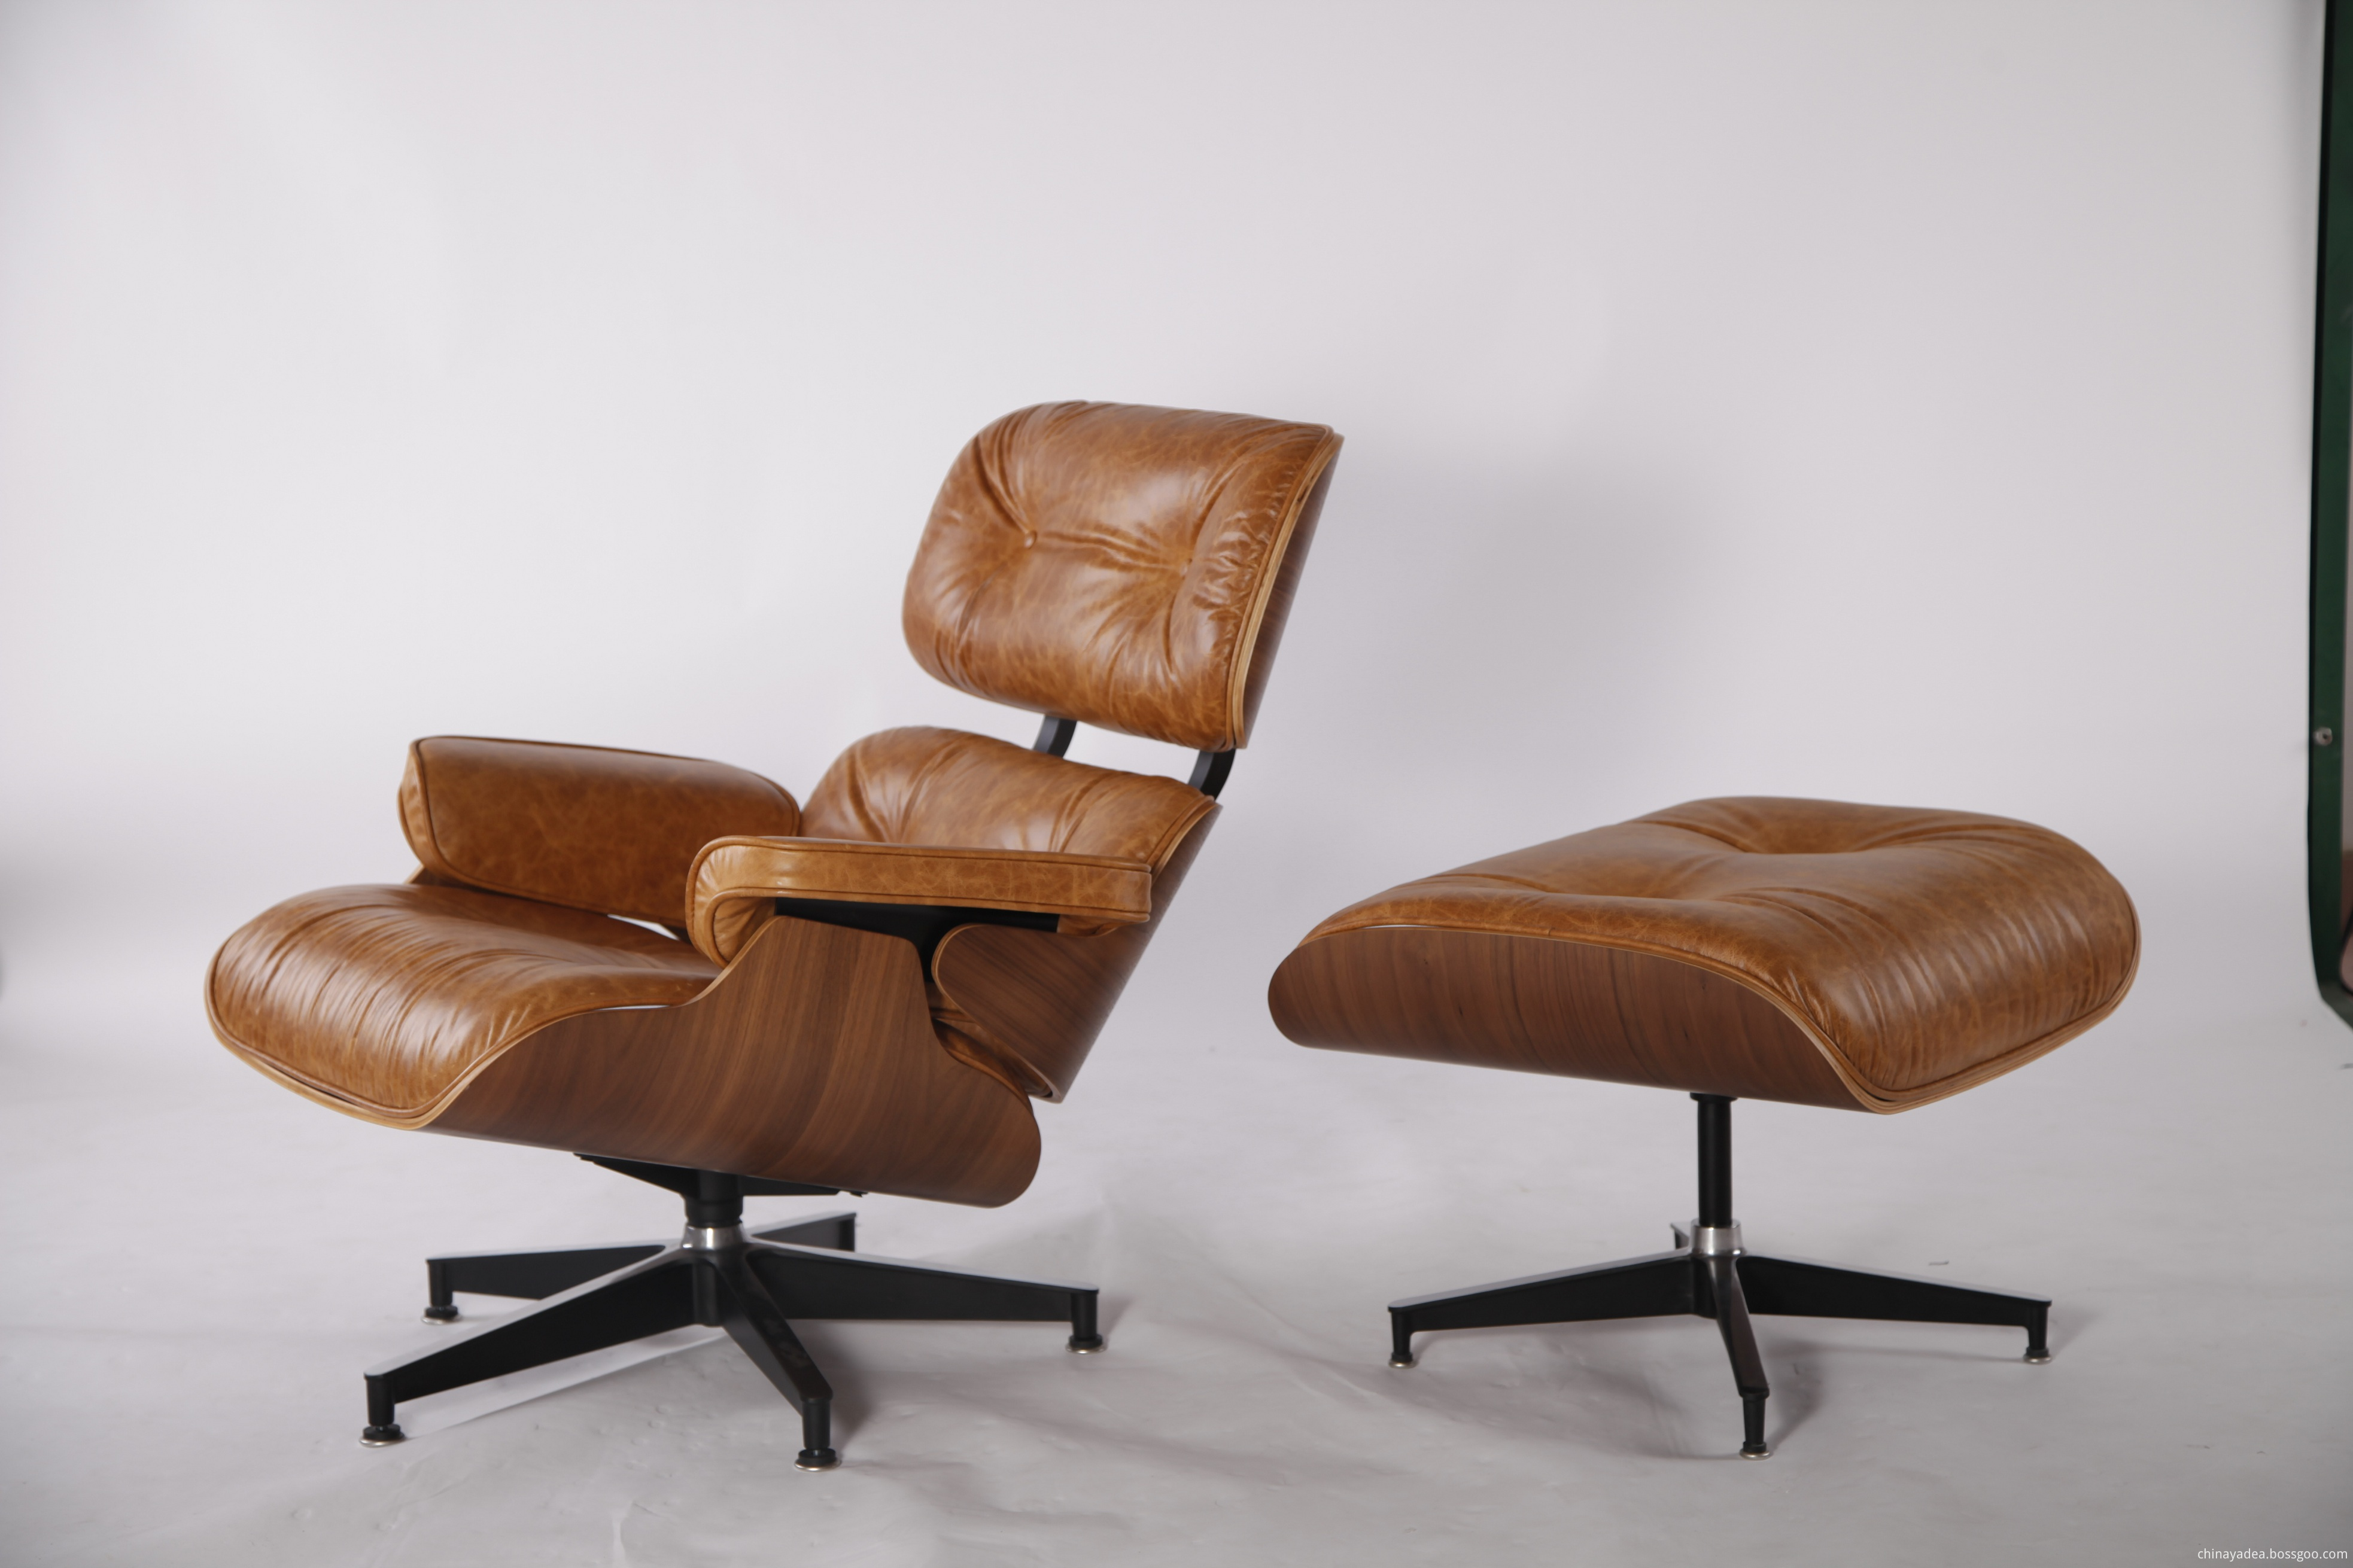 Charles and Ray Eames Chair and Ottoman